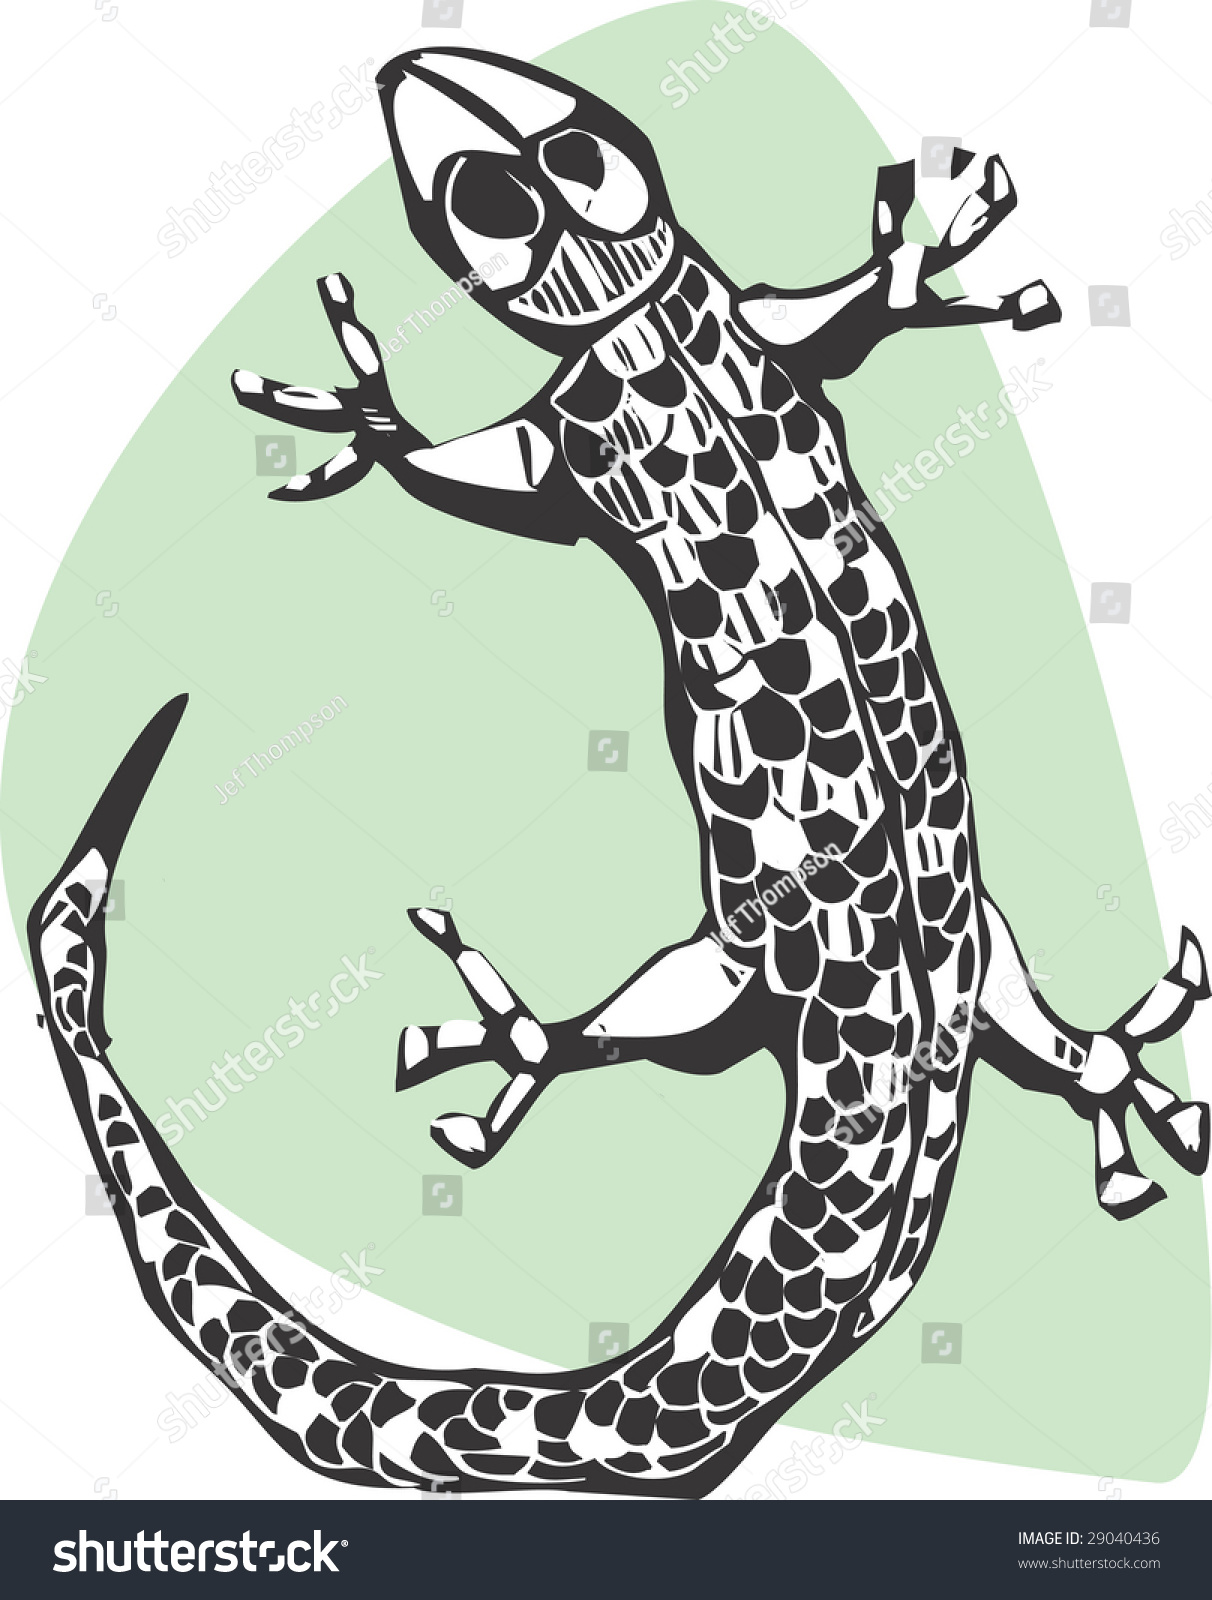 simple lizard done woodcut style stock vector 29040436 shutterstock